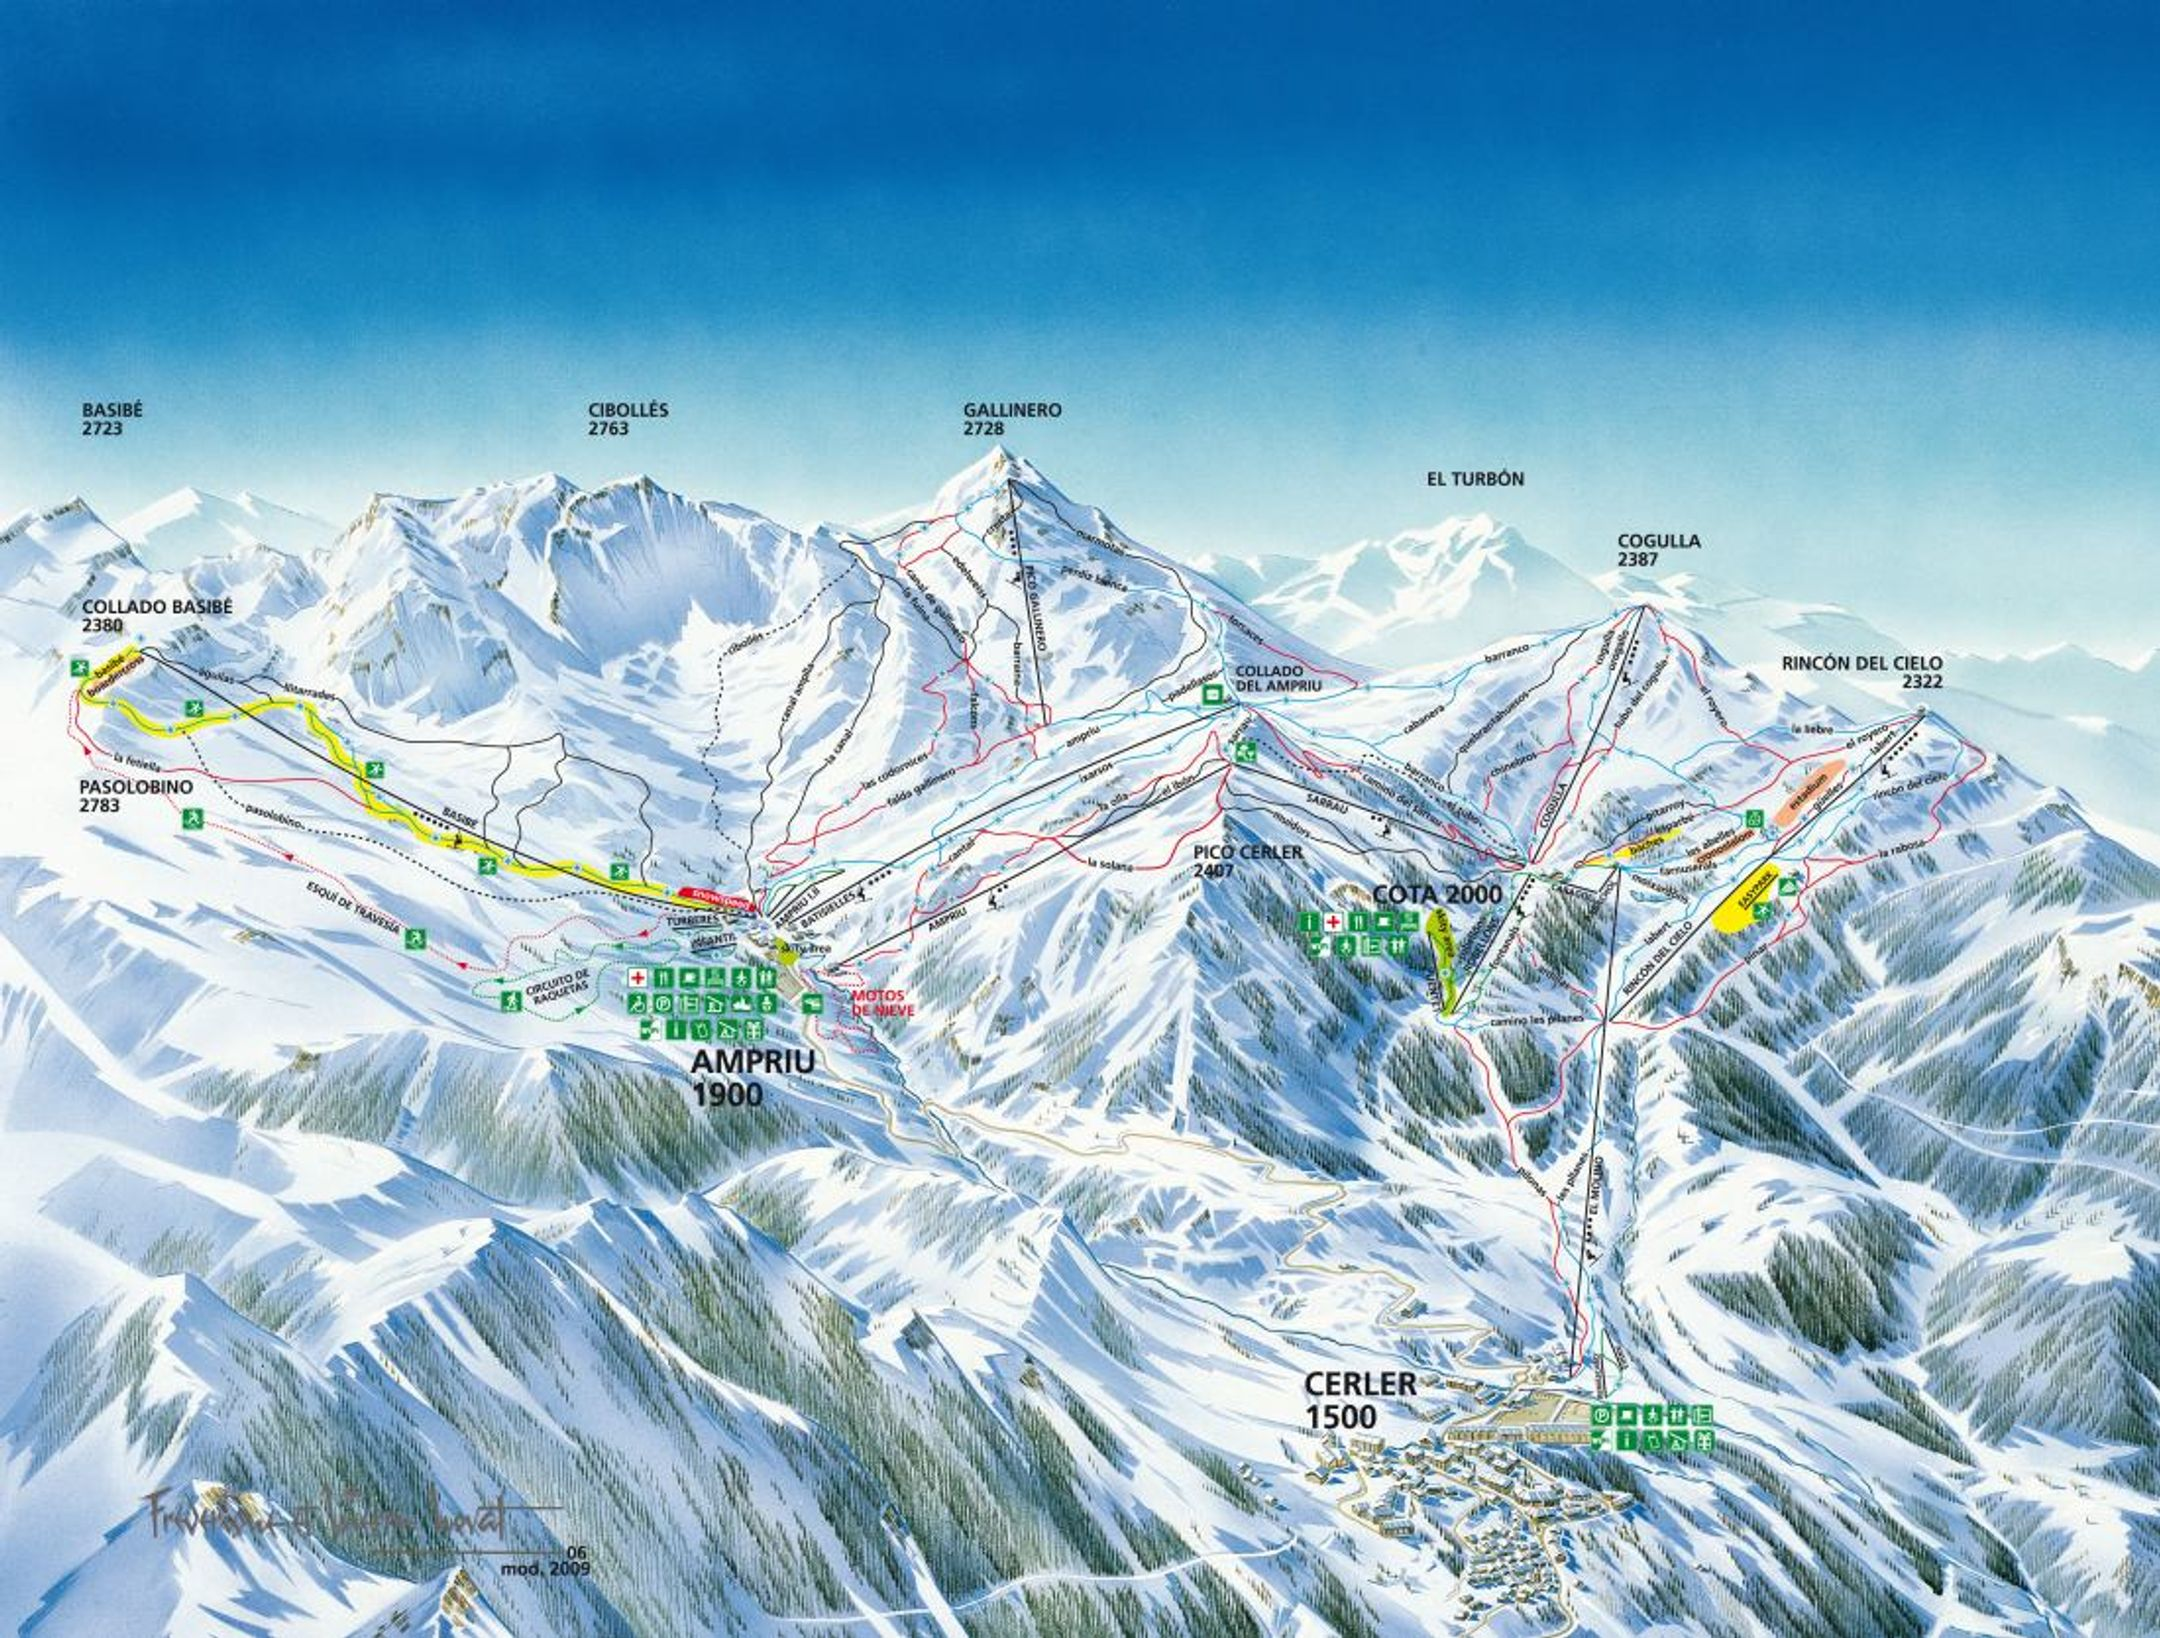 Cerler ski-resort-trail-map Spain ripatrip